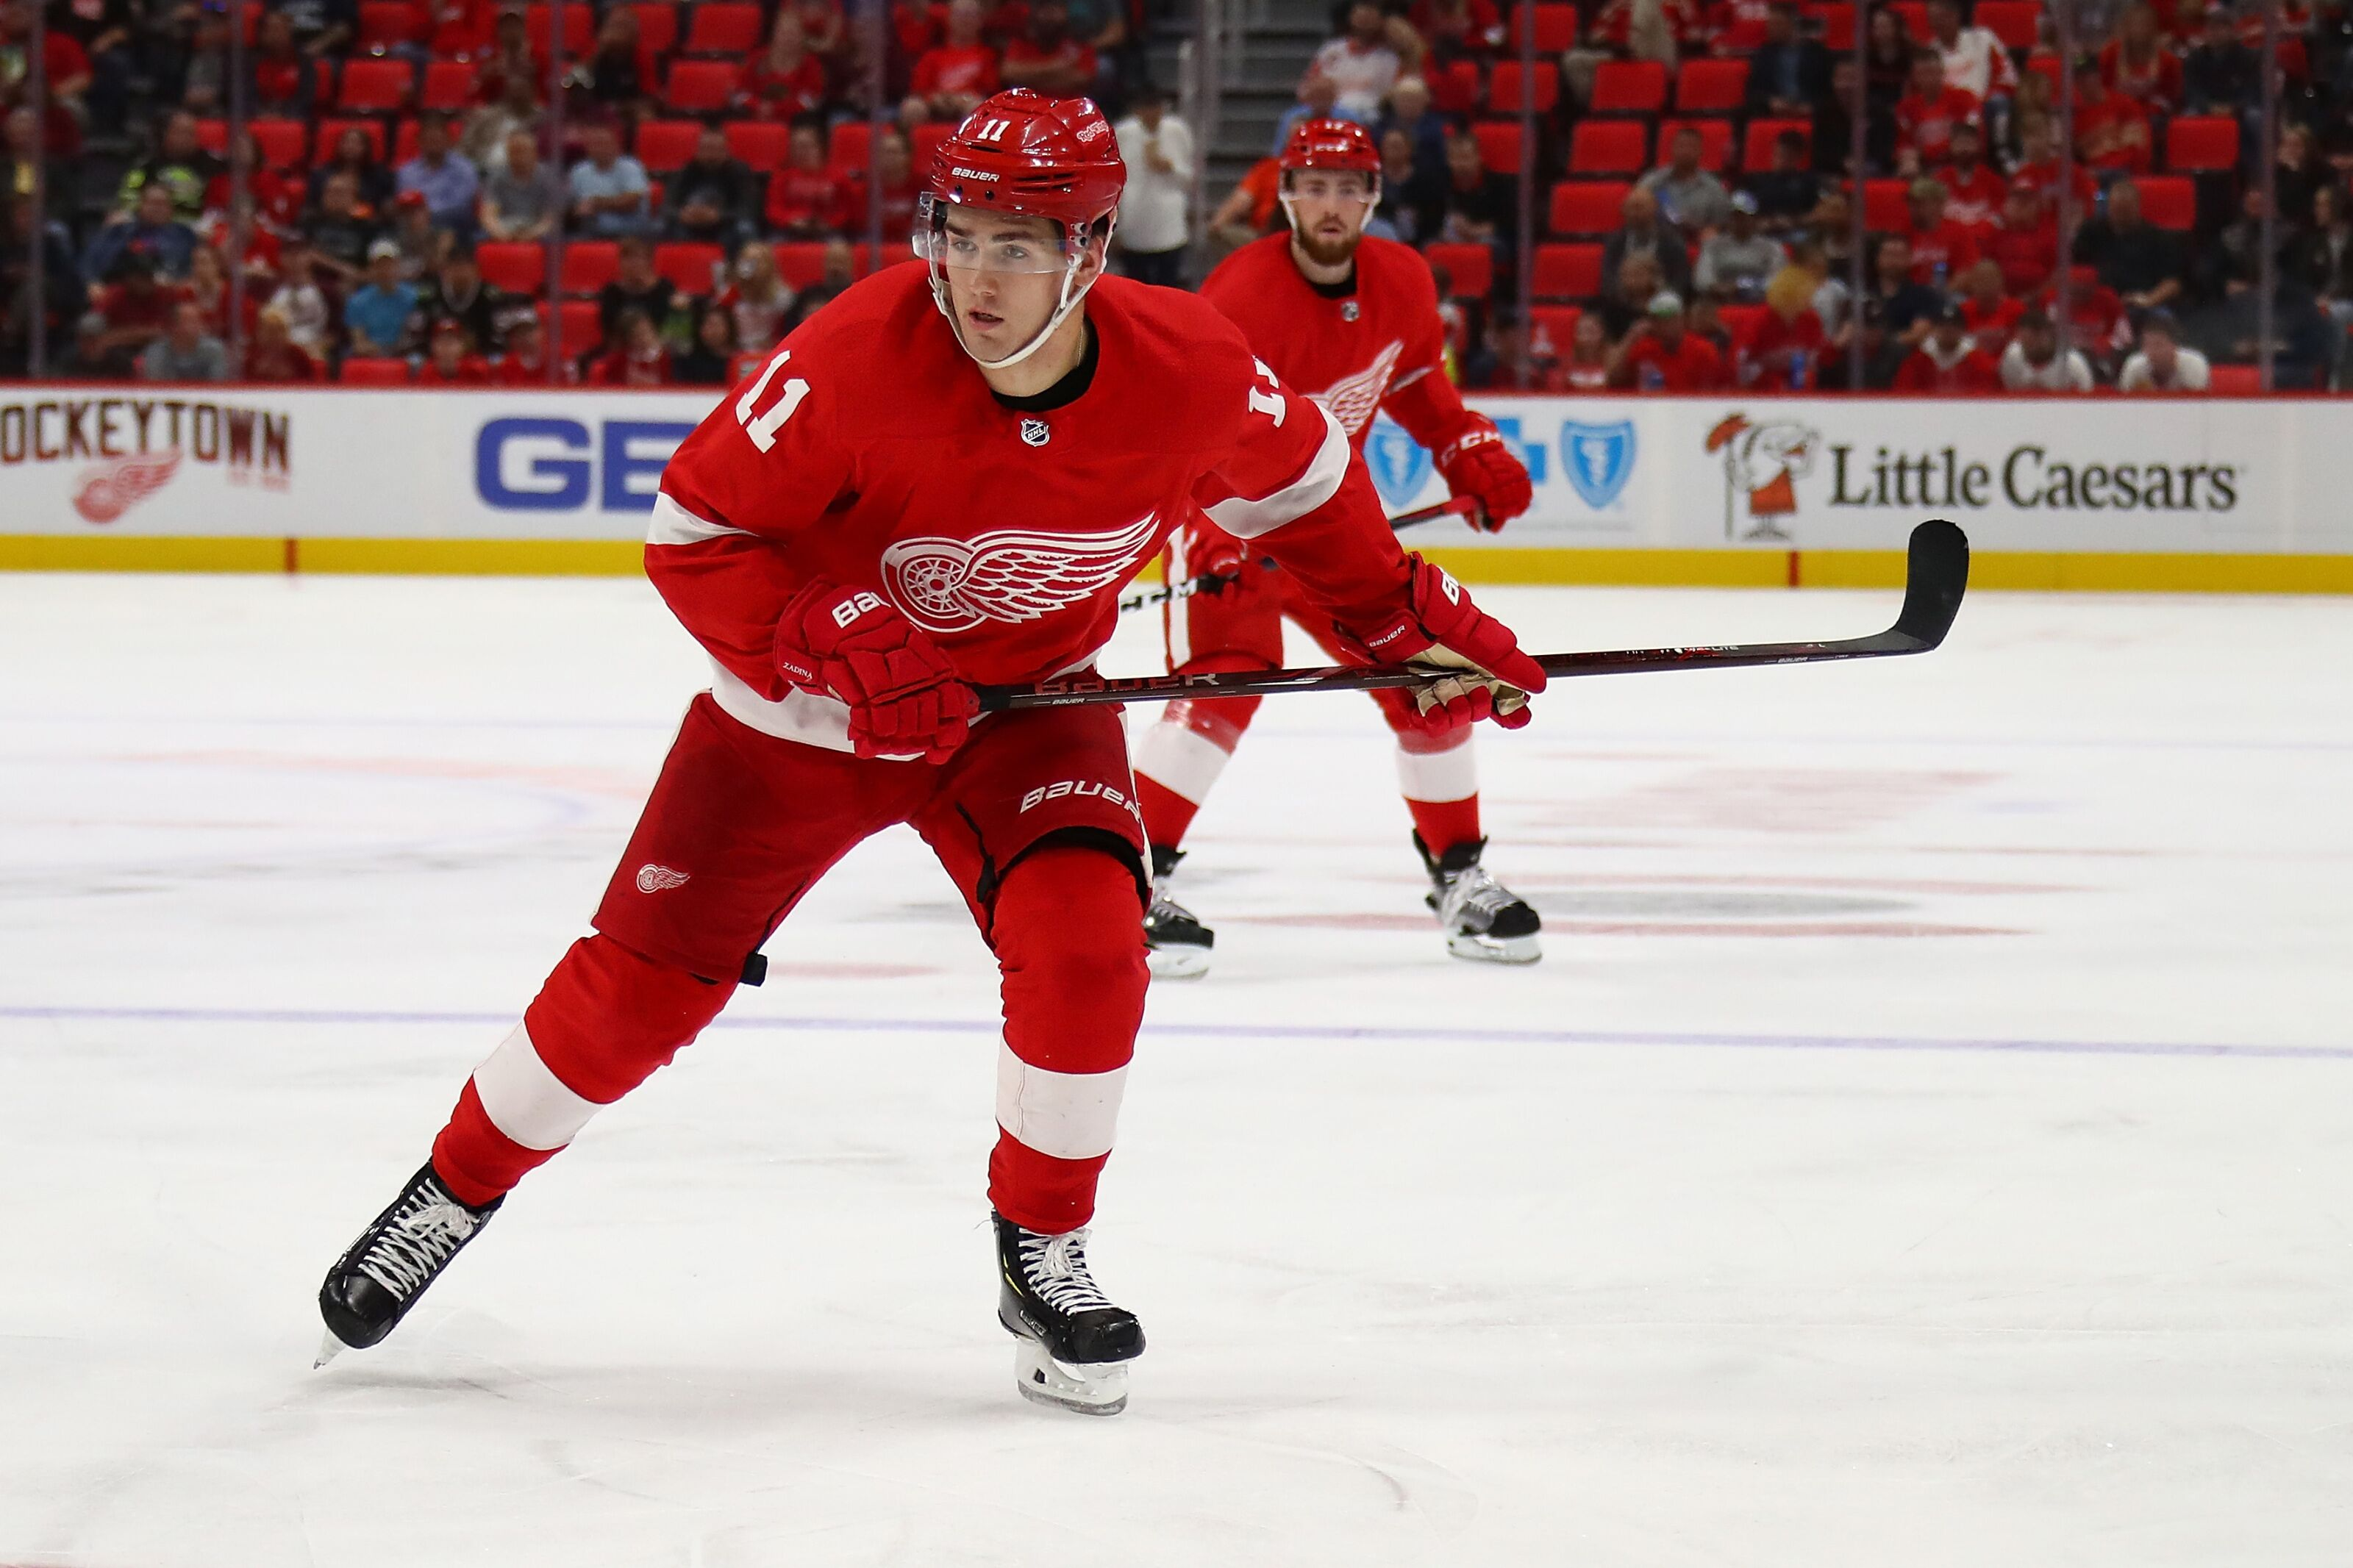 DETROIT, MI - SEPTEMBER 20: Filip Zadina #11 of the Detroit Red Wings skates against the Chicago Blackhawks during a pre season game at Little Caesars Arena on September 20, 2018 in Detroit, Michigan. (Photo by Gregory Shamus/Getty Images)